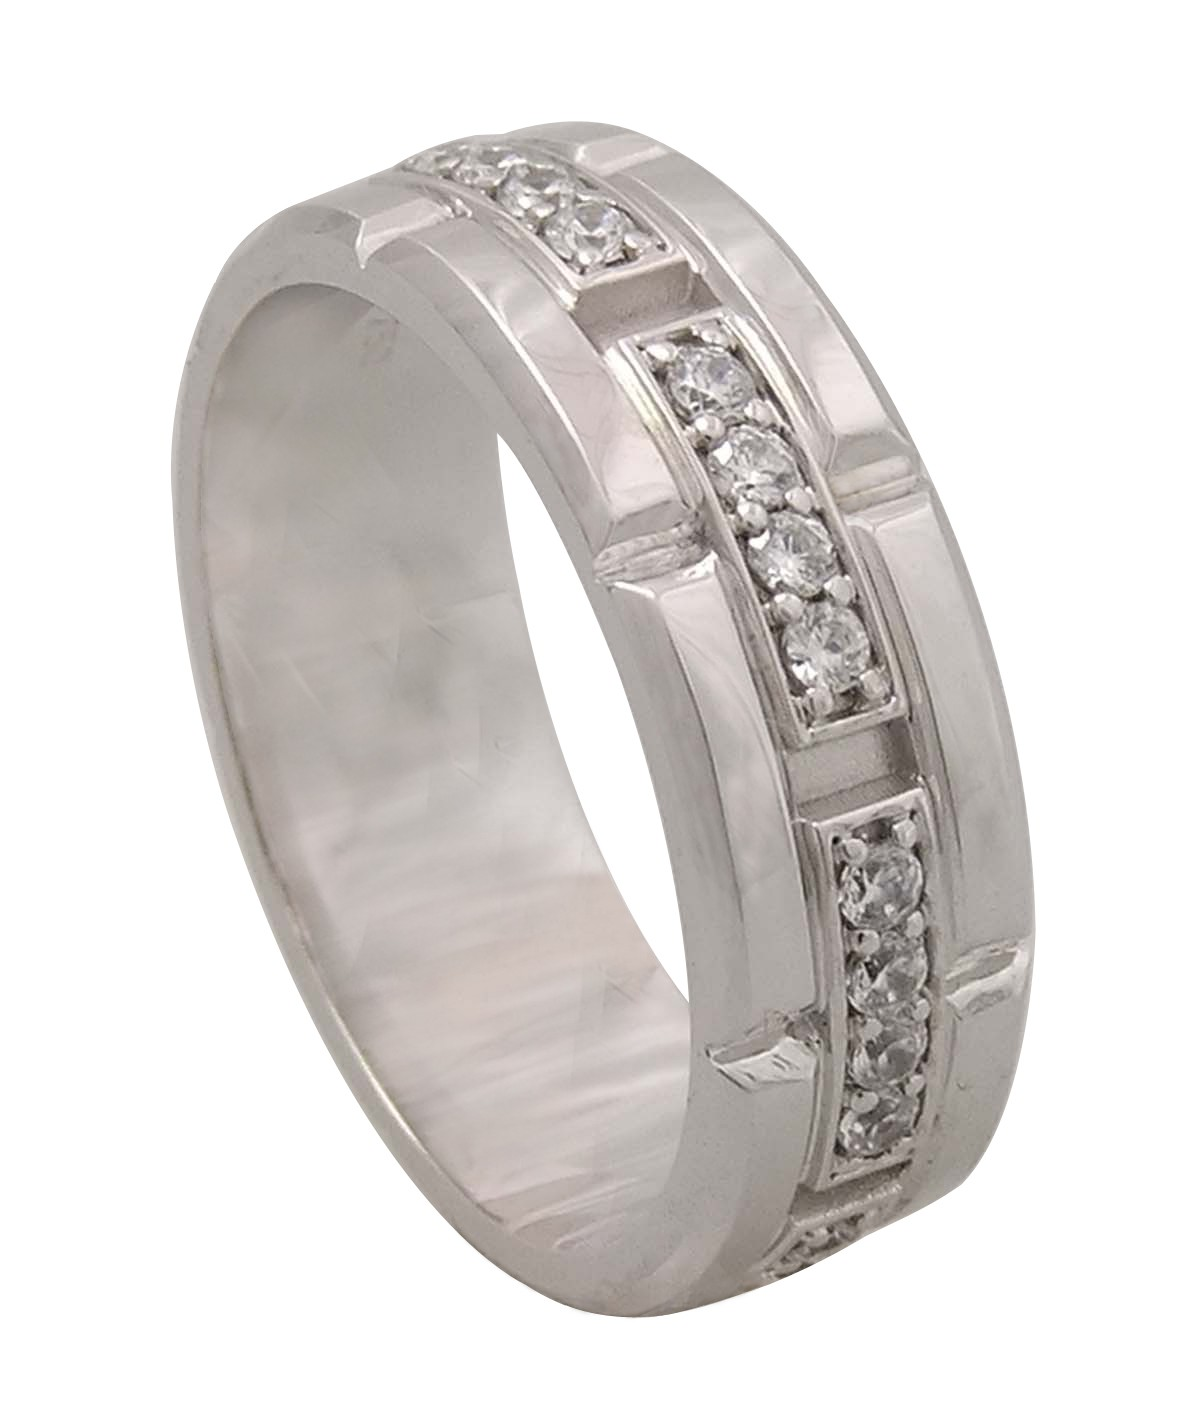 Pave Set Diamond Gents Ring